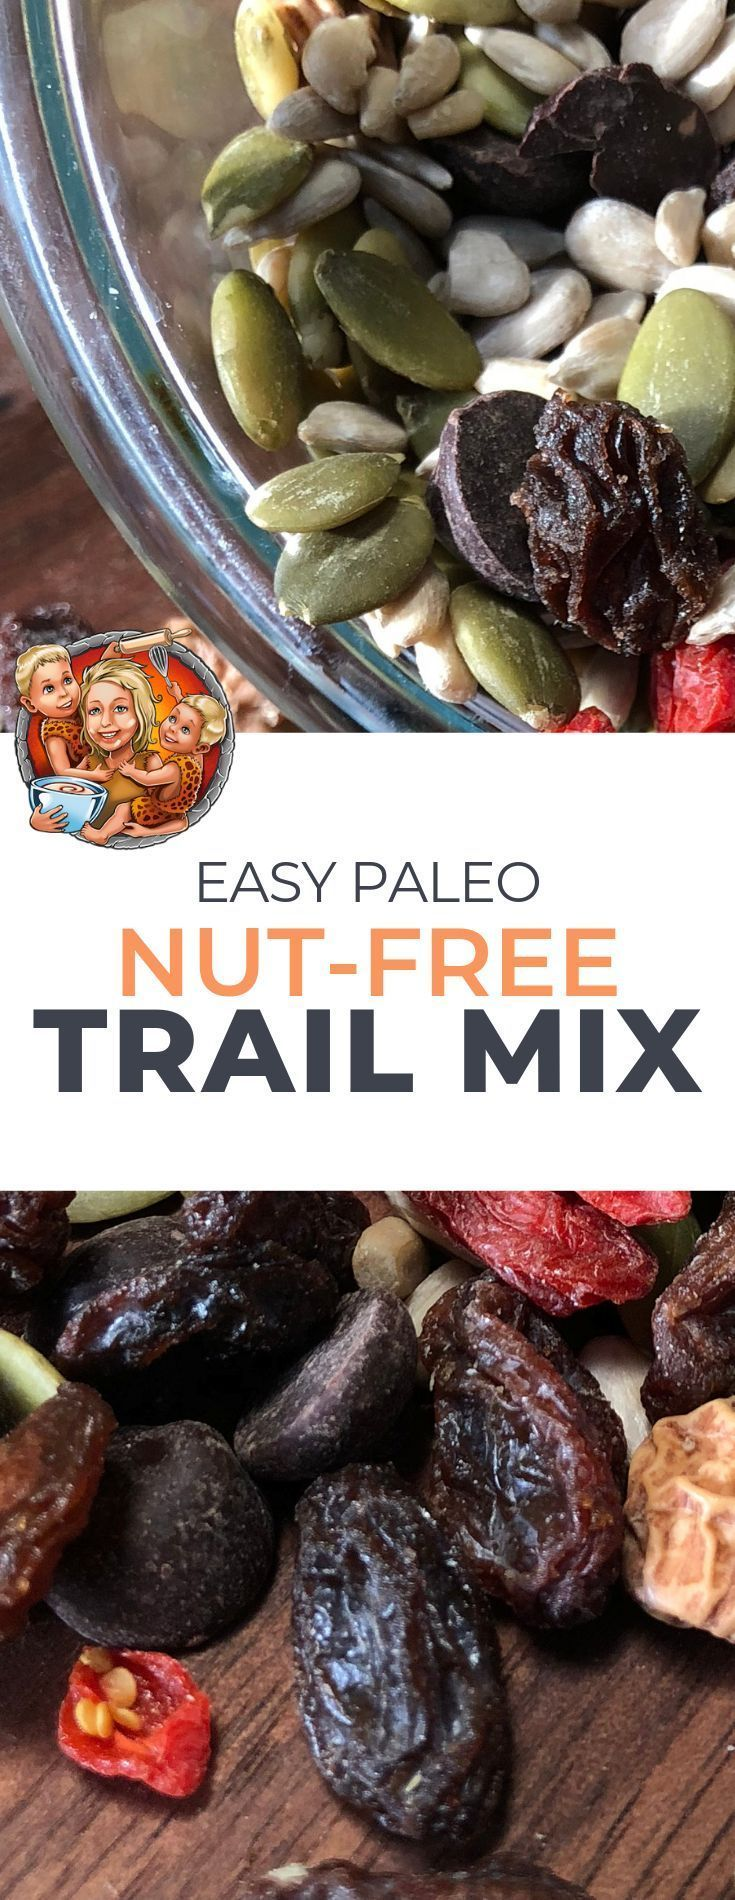 Nut Free Trail Mix – Paleo Rezepte – #Free #Mix #Nut #Paleo #Recipes #Trail   – …